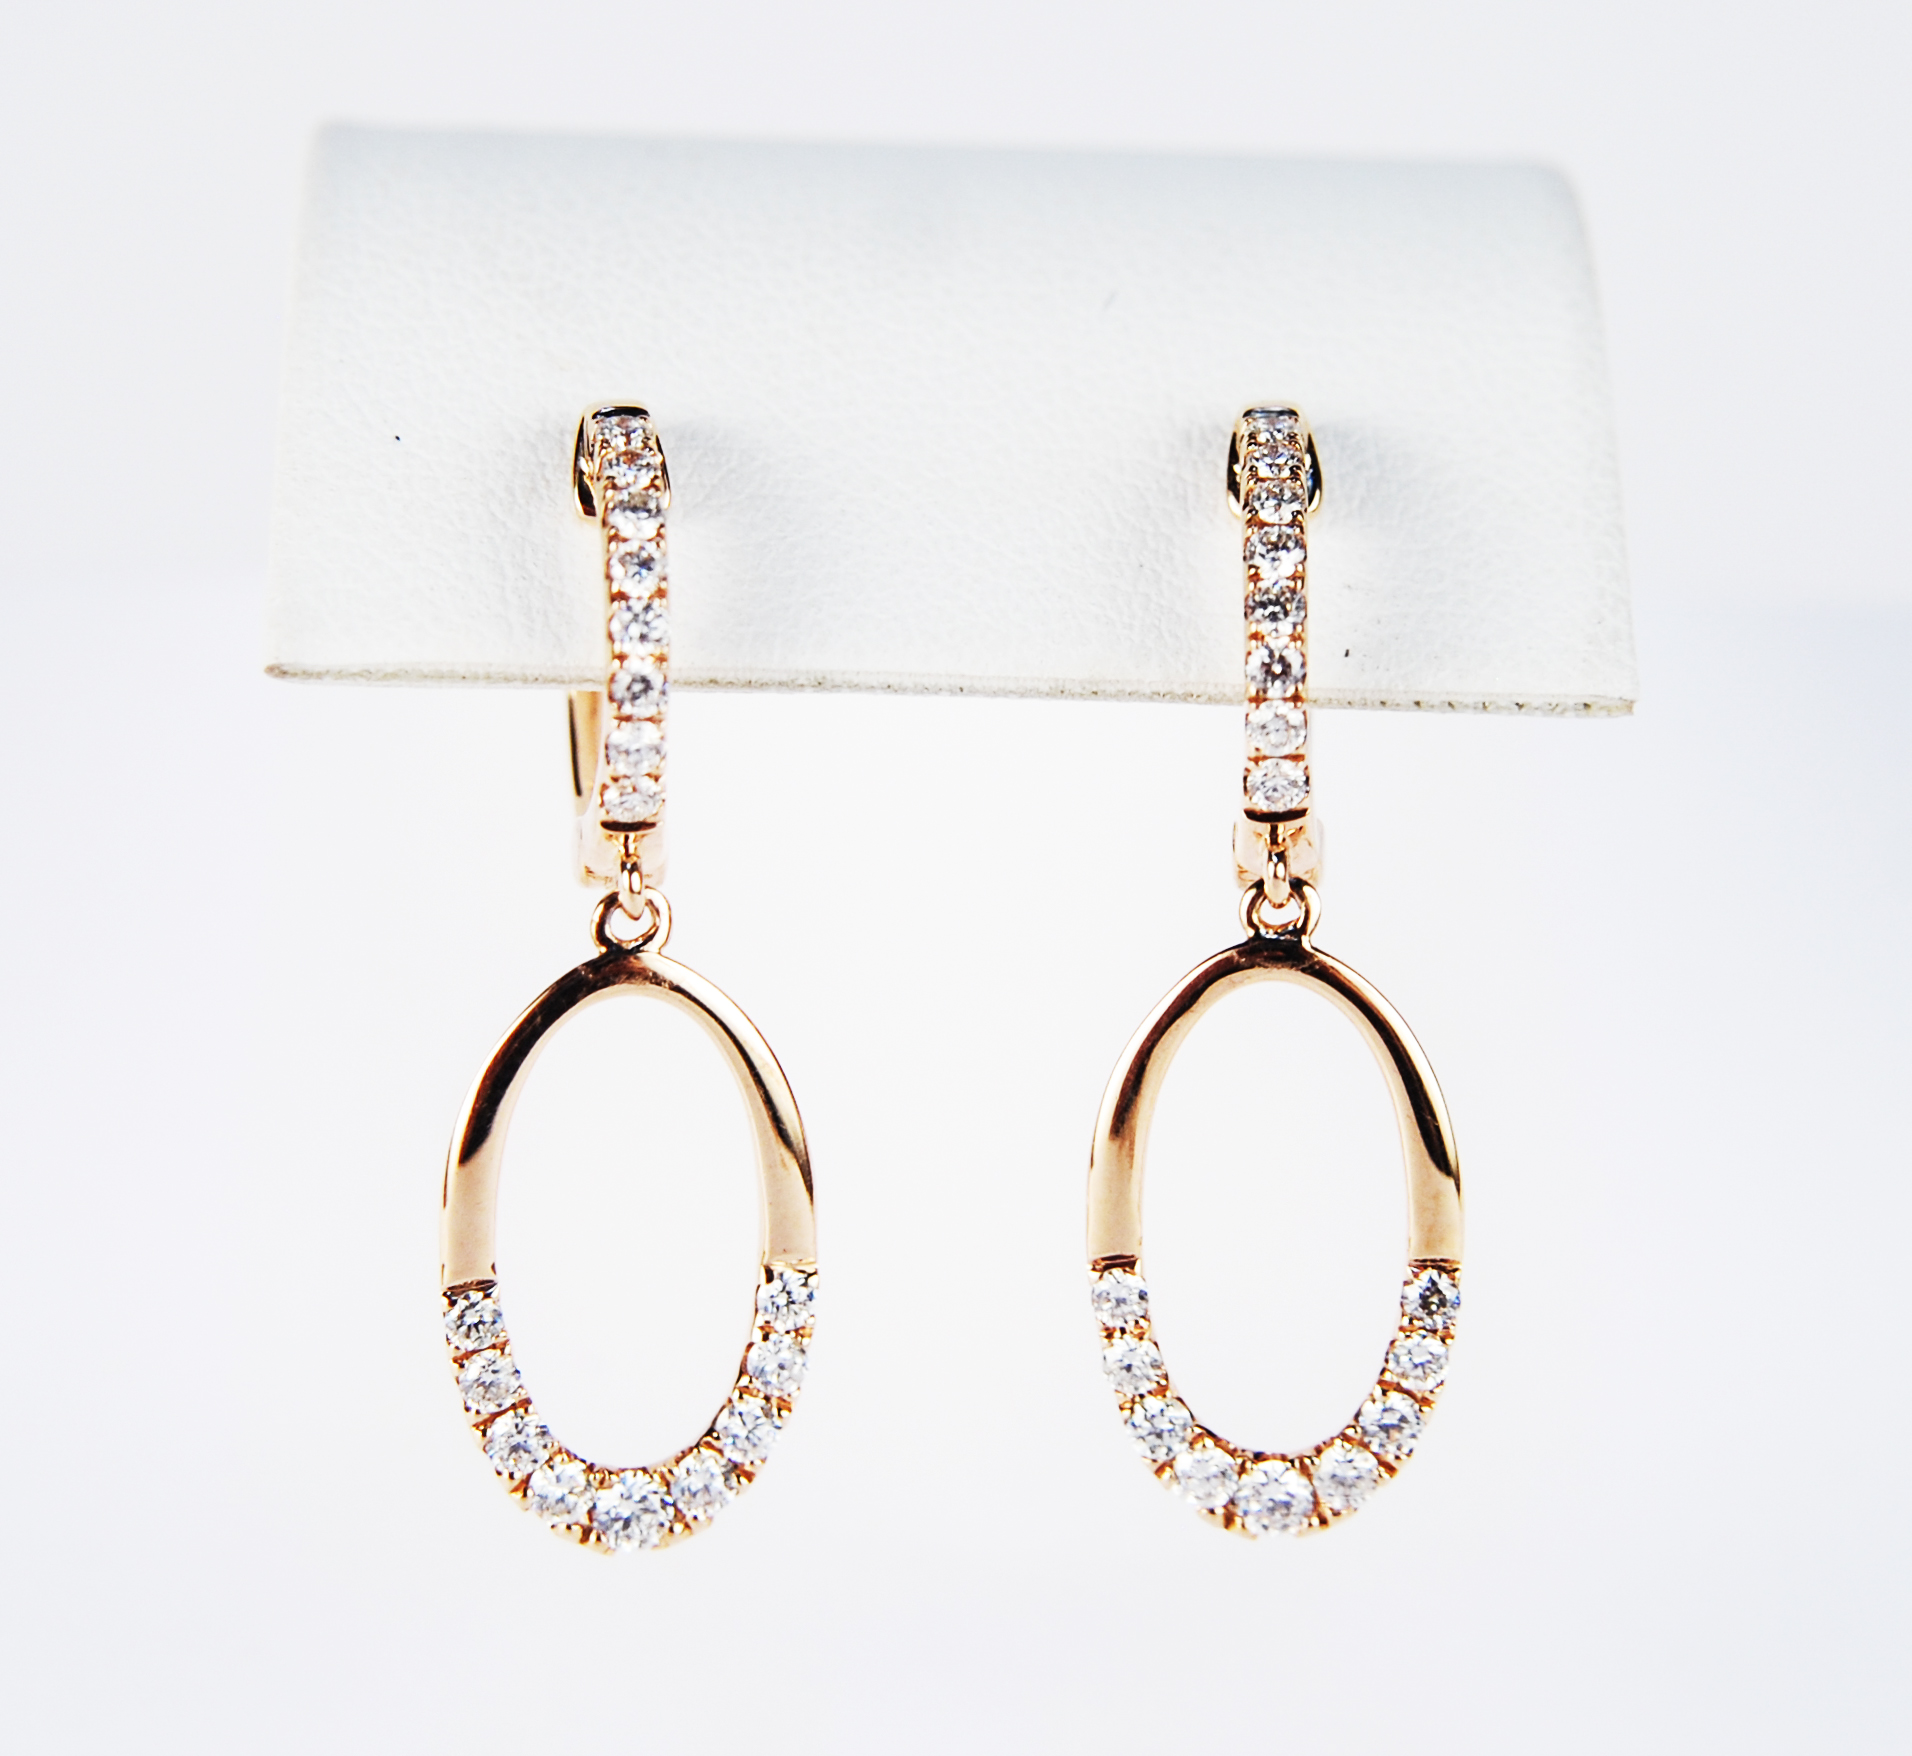 150-479   18 Karat Rose Gold Satin Lever Back Drop Earrings With 0.58Tw Round Diamonds $1,563.00